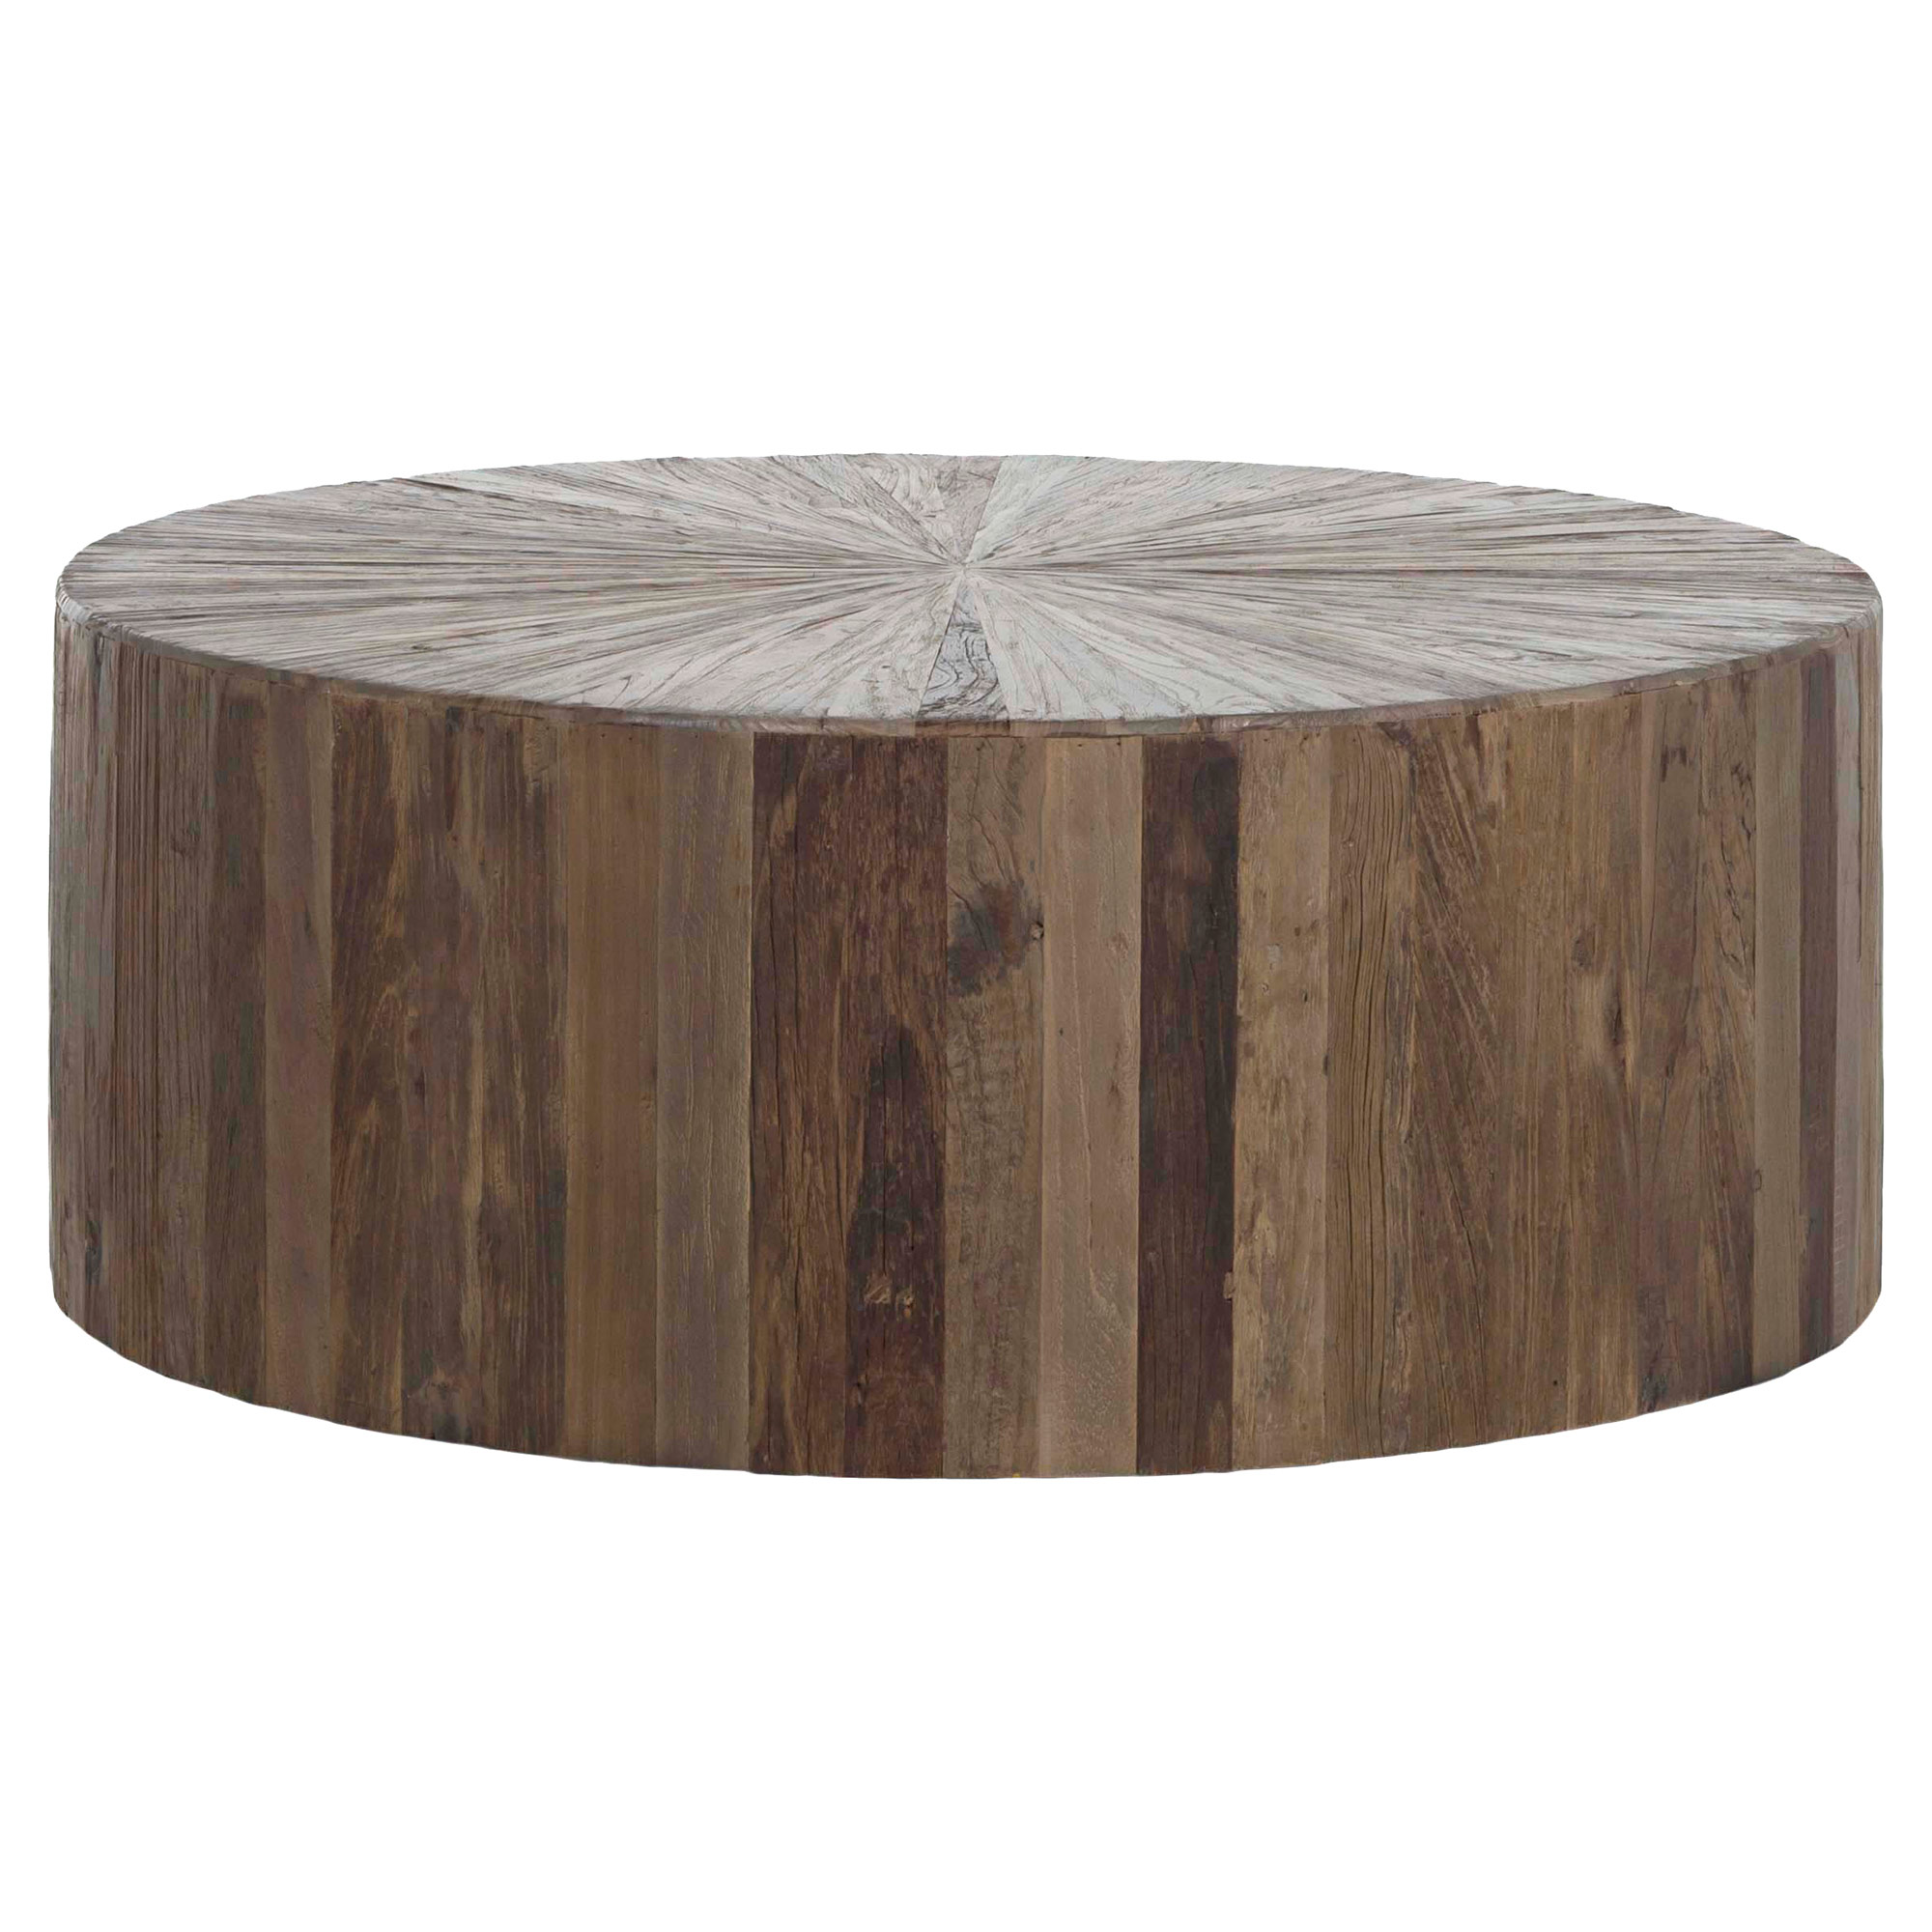 3690 Cyrano Reclaimed Wood Solid Round Drum Modern Eco Coffee Table